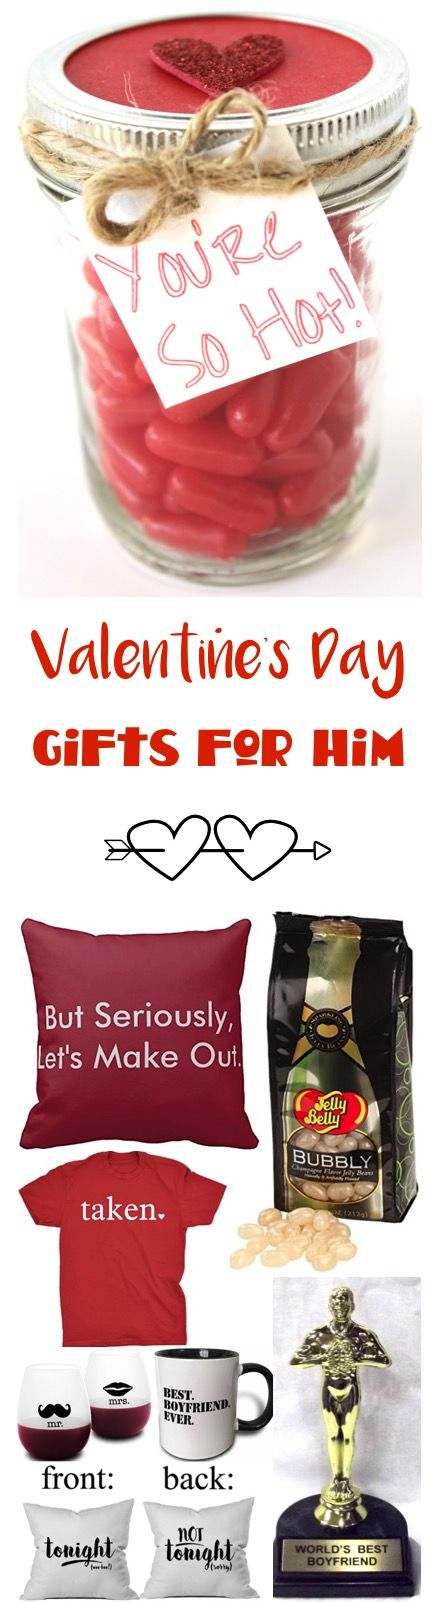 44 Valentineu0027s Day Gifts for Him! {Fun \ Romantic} Valentineu0027s - valentines day gifts